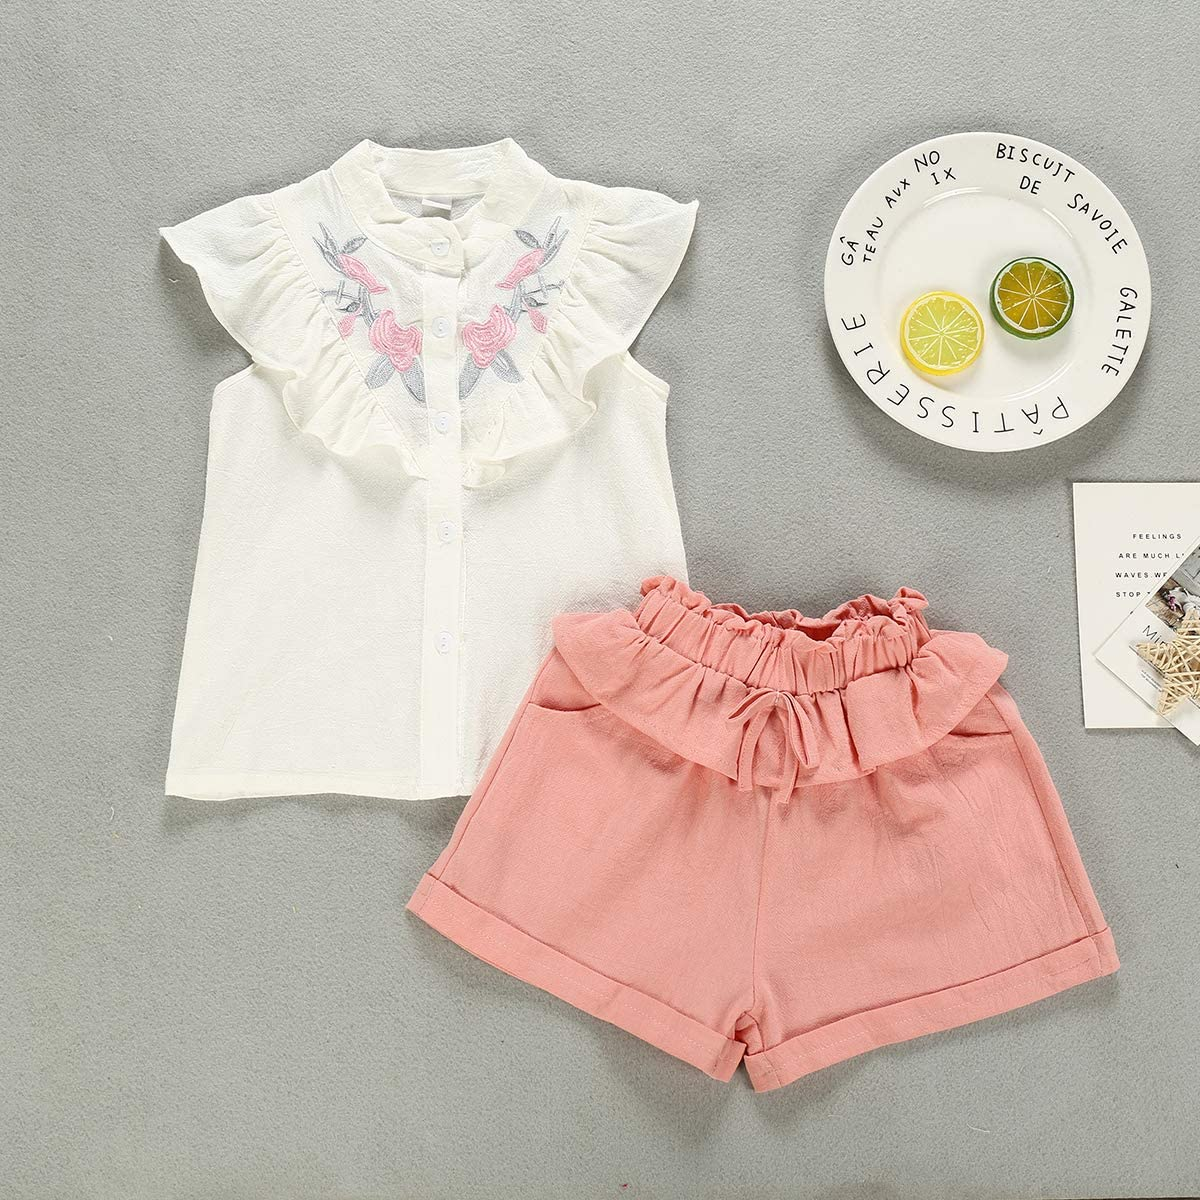 Sequins Shorts Outfit Set with Headband Toddler Kid Baby Girl Summer Princess Letter Print Tank Tops